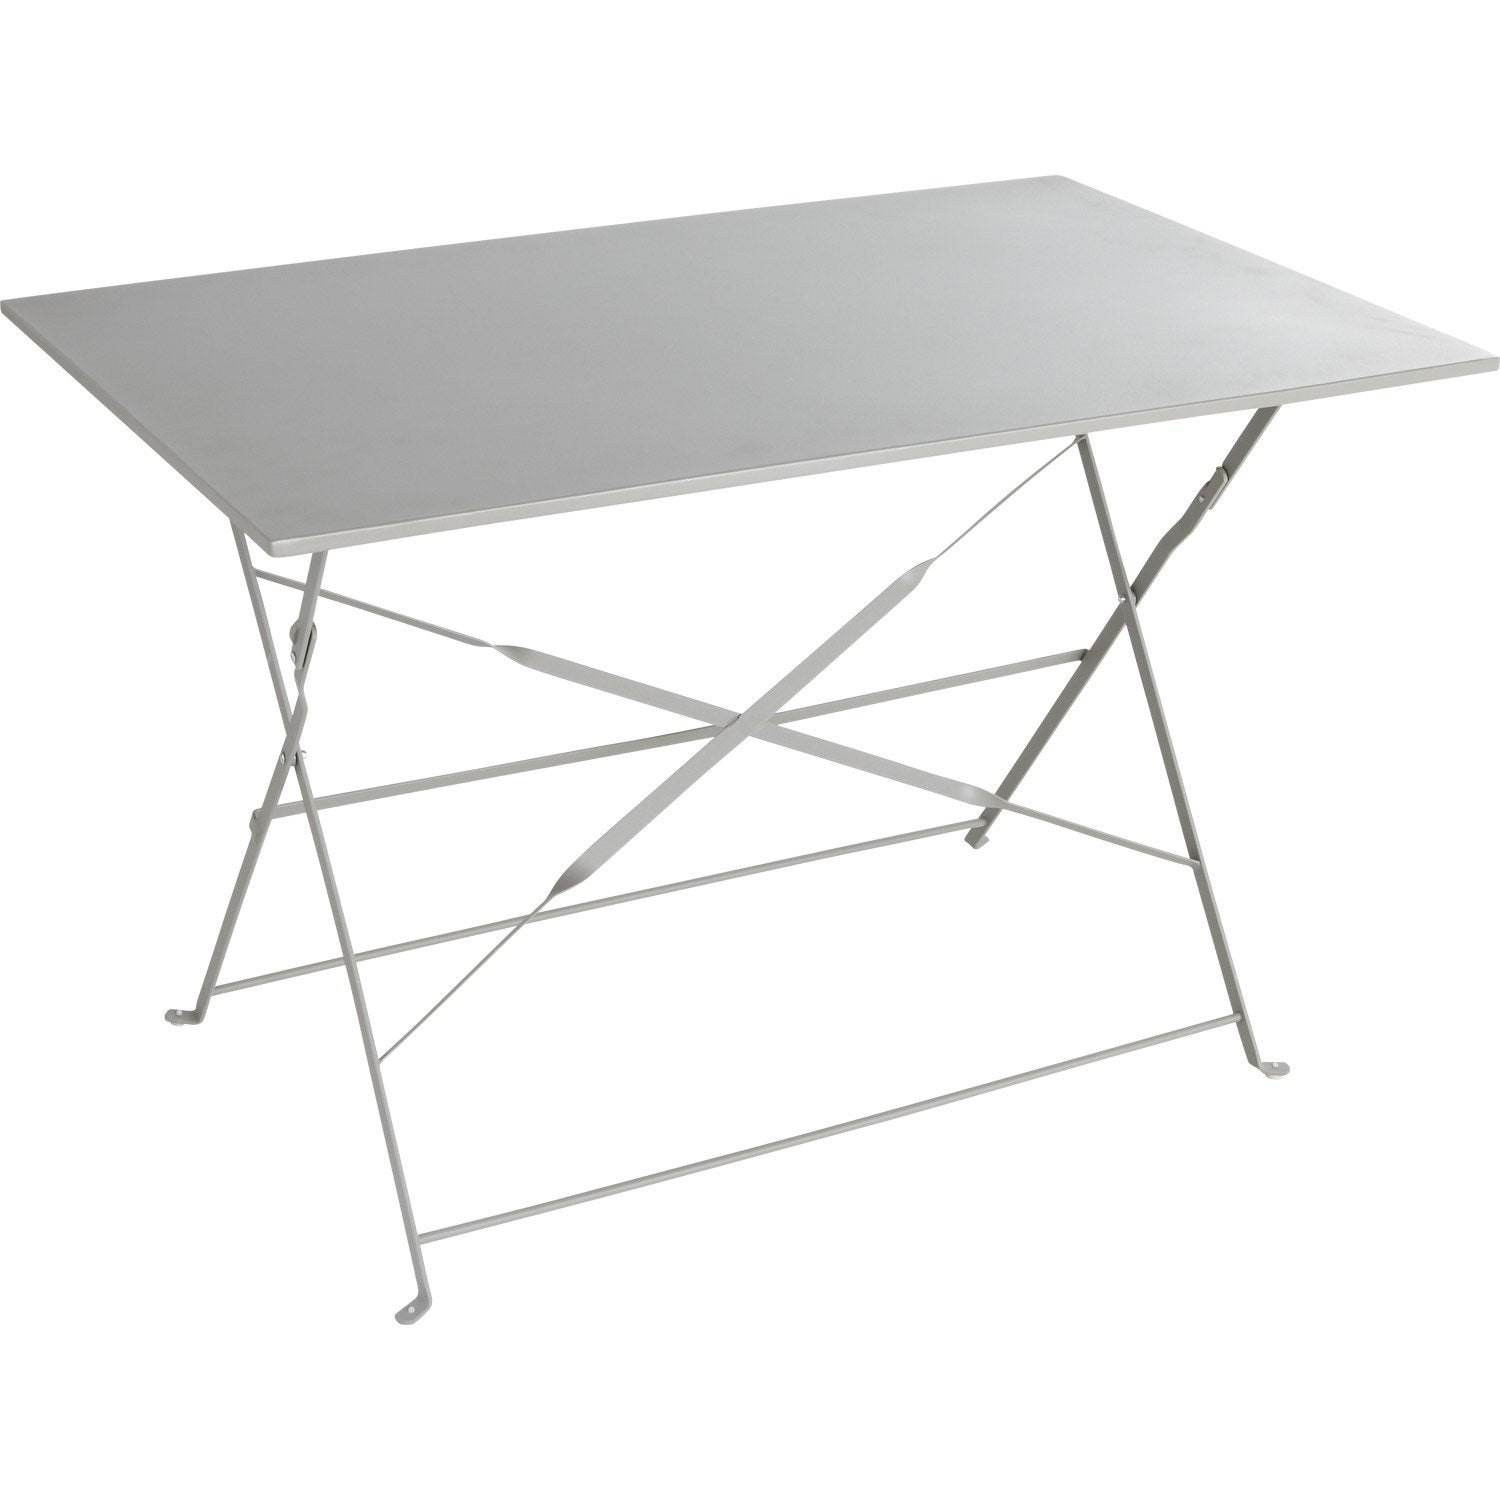 Table de jardin naterial flore rectangulaire gris 4 for Pied de table cuisine leroy merlin